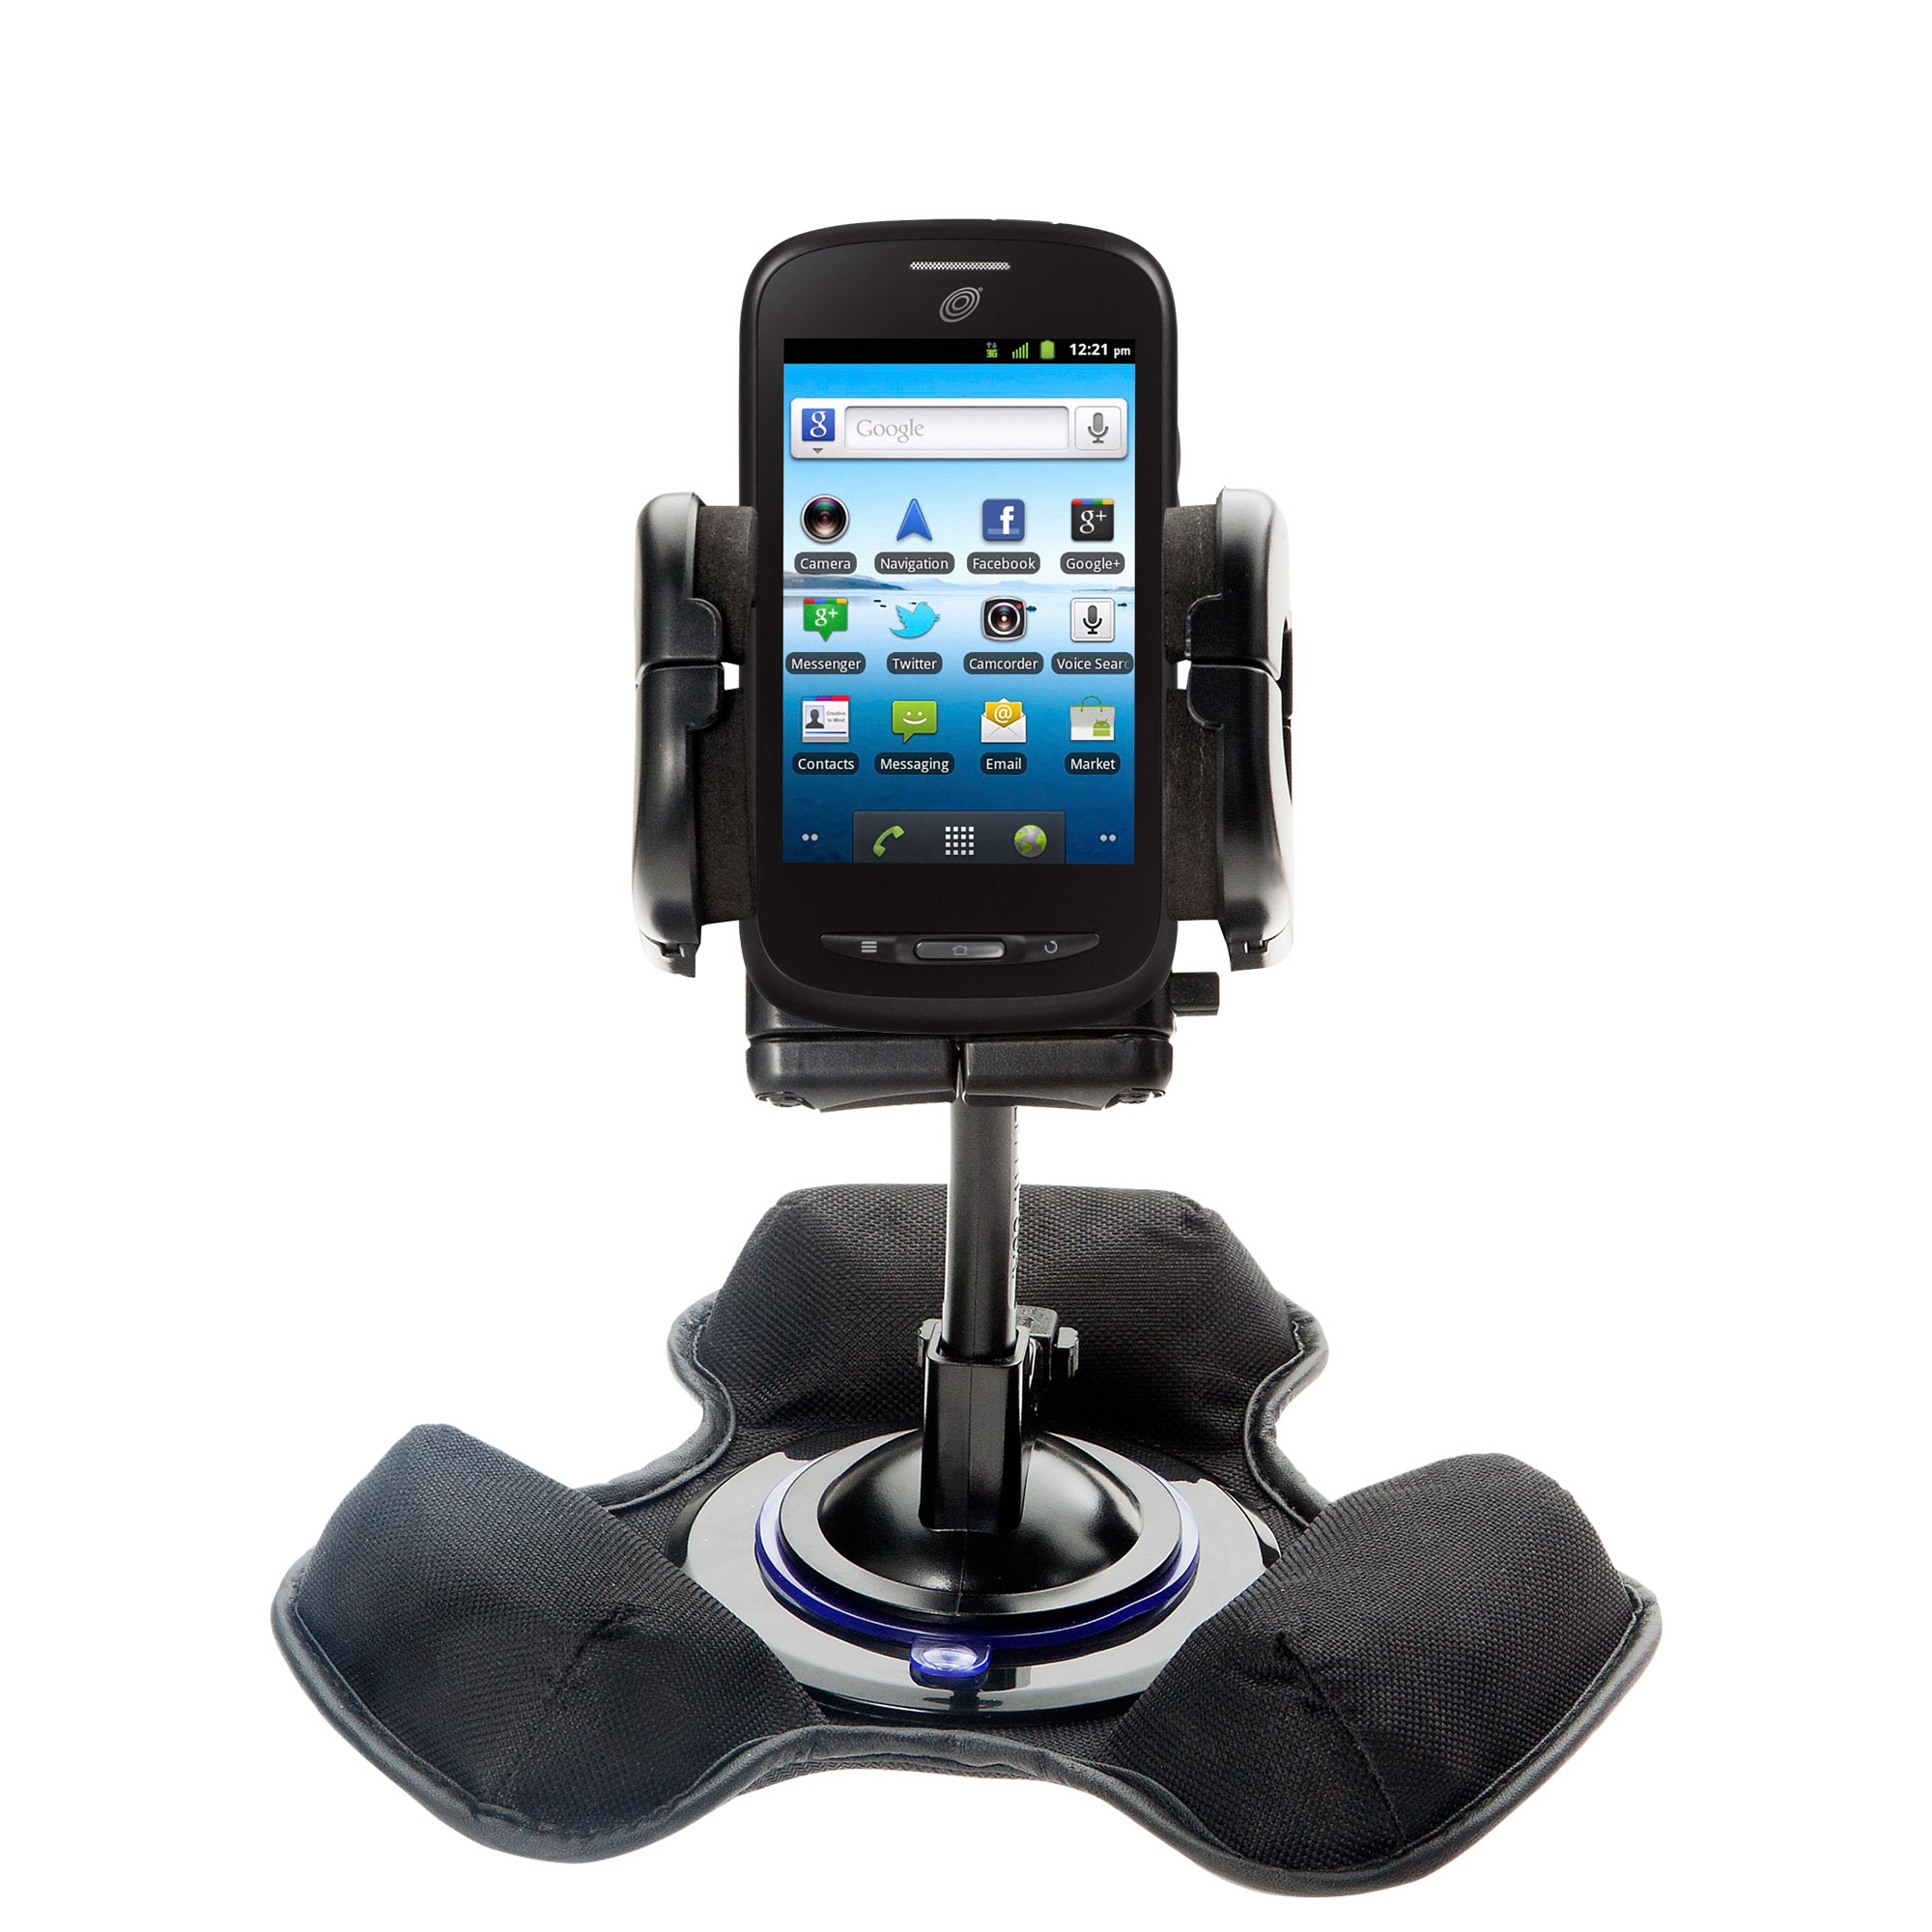 Car / Truck Vehicle Holder Mounting System for ZTE Merit Z990G Includes Unique Flexible Windshield Suction and Universal Dashboard Mount Options